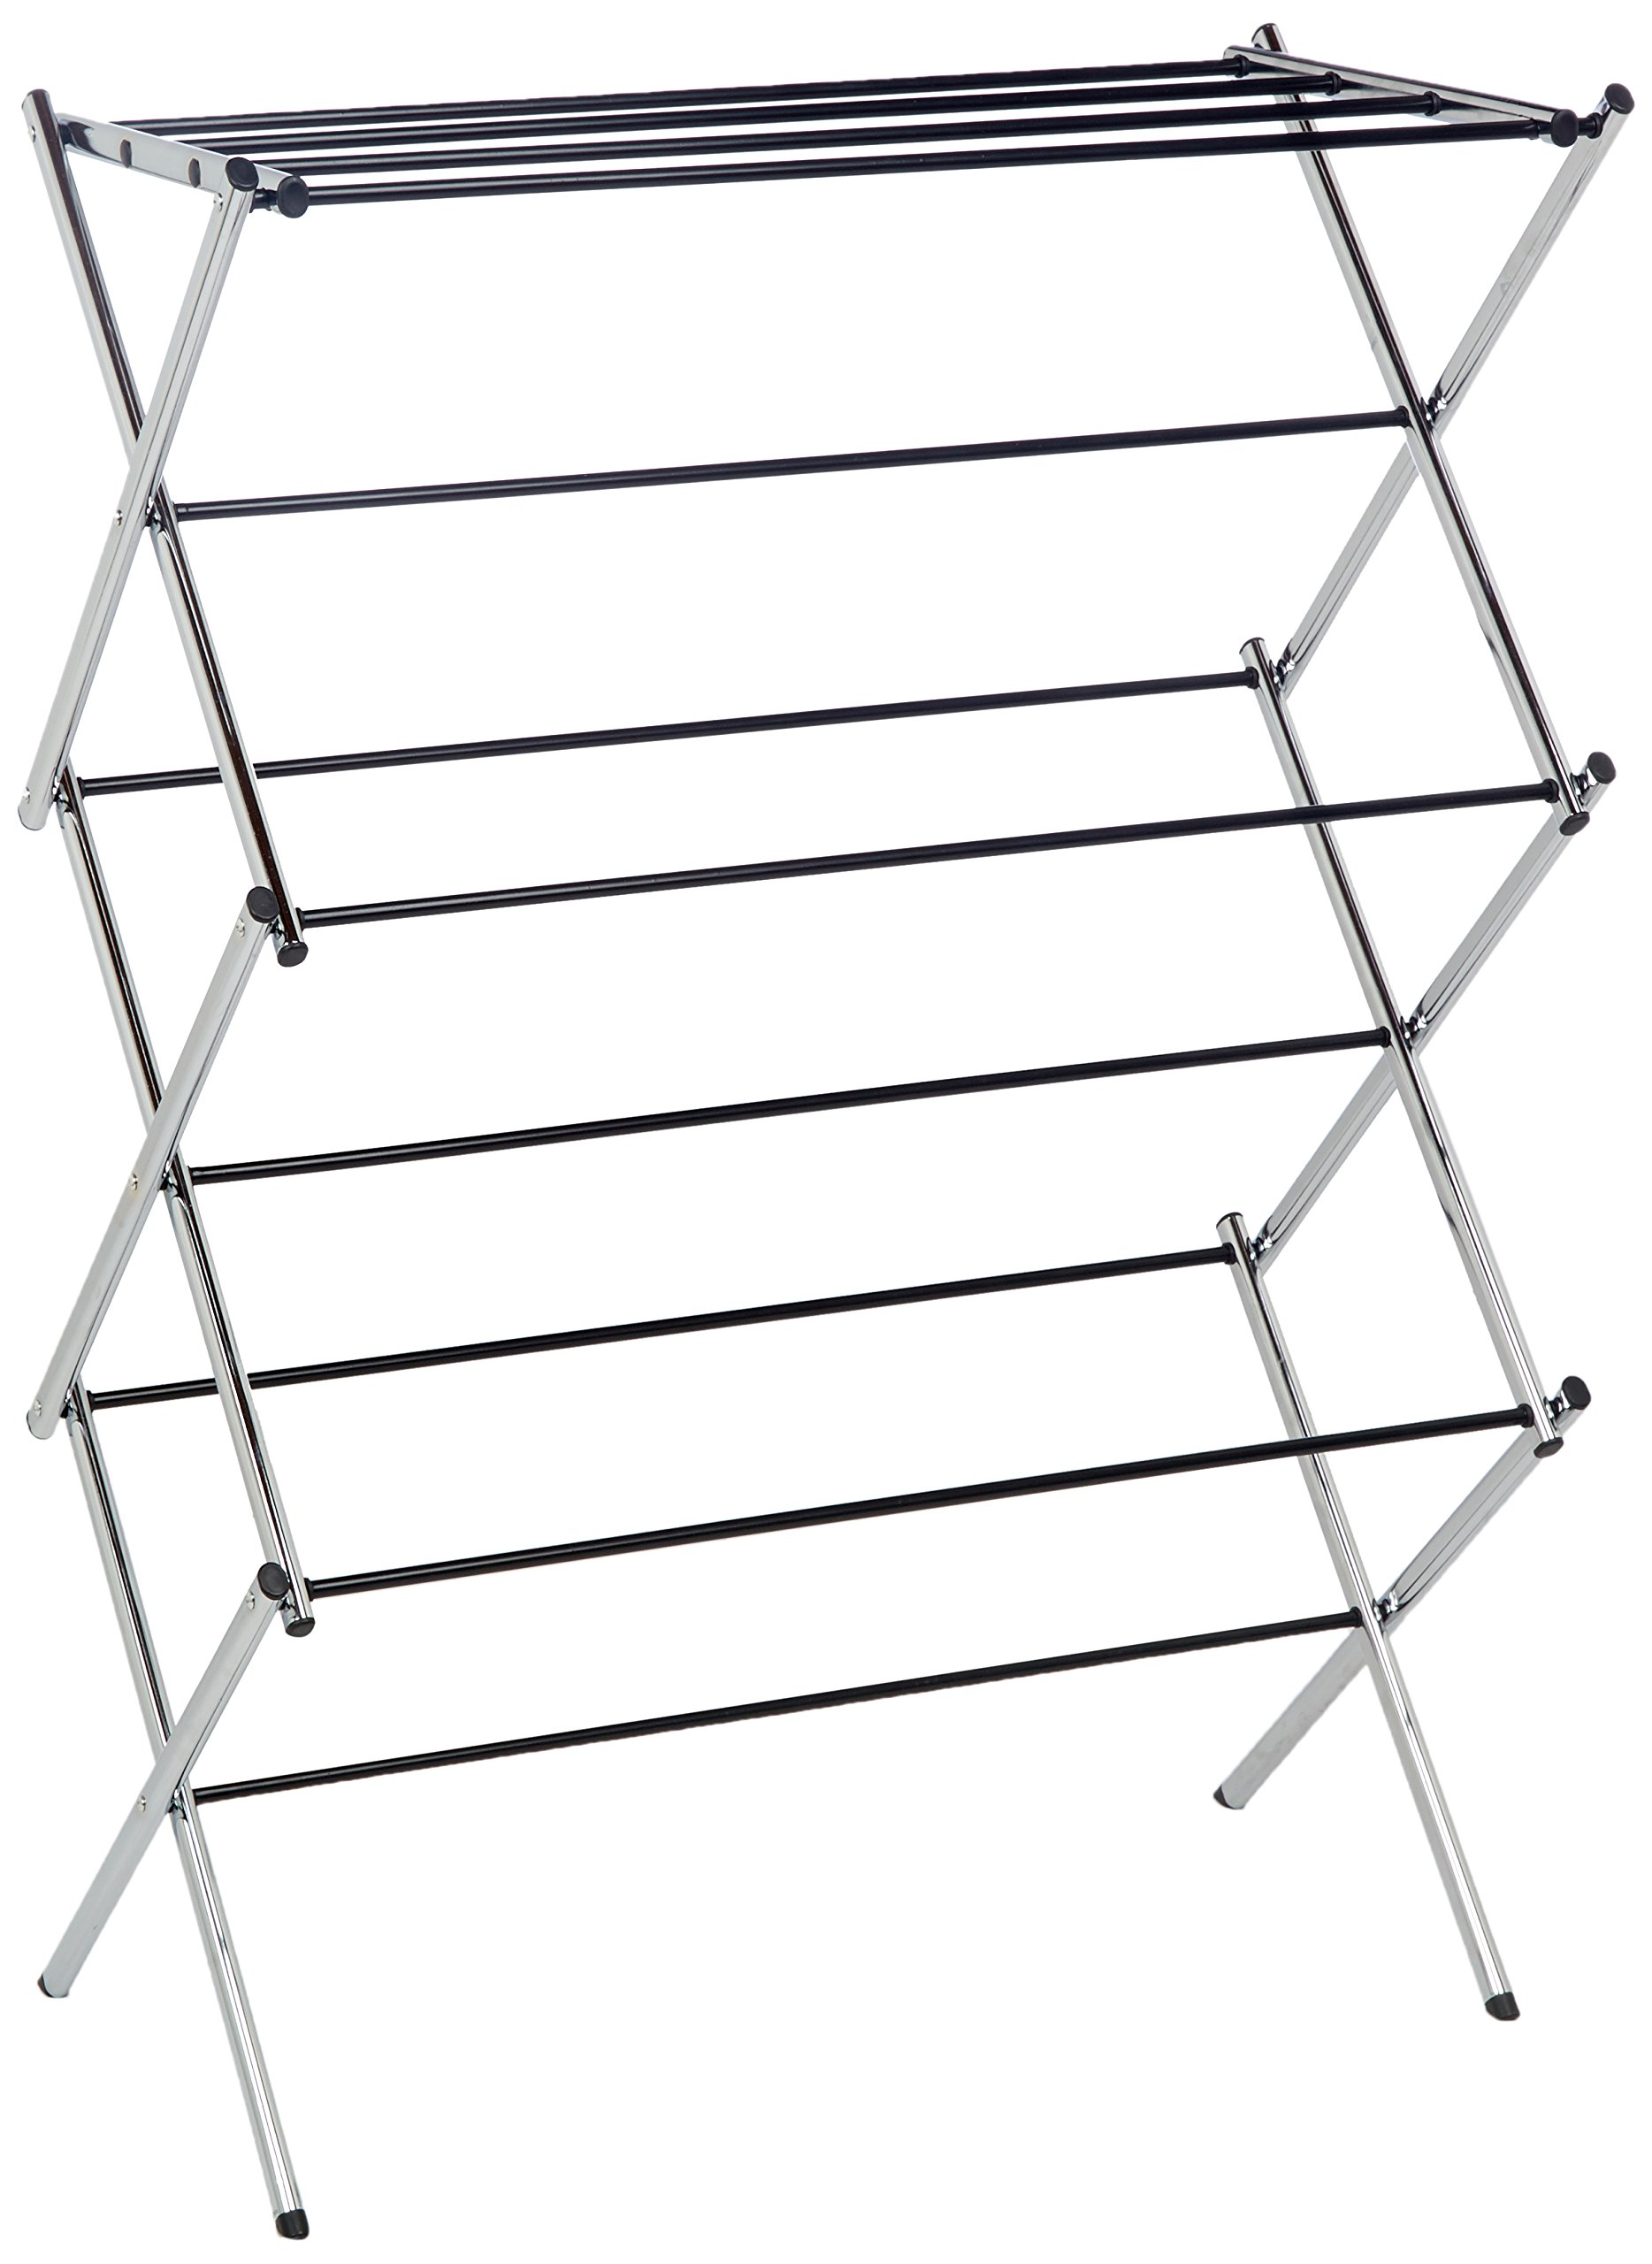 AmazonBasics Foldable Clothes Drying Laundry Rack - Chrome - Clothes drying rack for energy savings and gentle drying so your clothes last longer Made of durable yet lightweight steel that is easy to move from room to room Accordion design folds flat for compact storage - laundry-room, entryway-laundry-room, drying-racks - 81T2KtBCpaL -